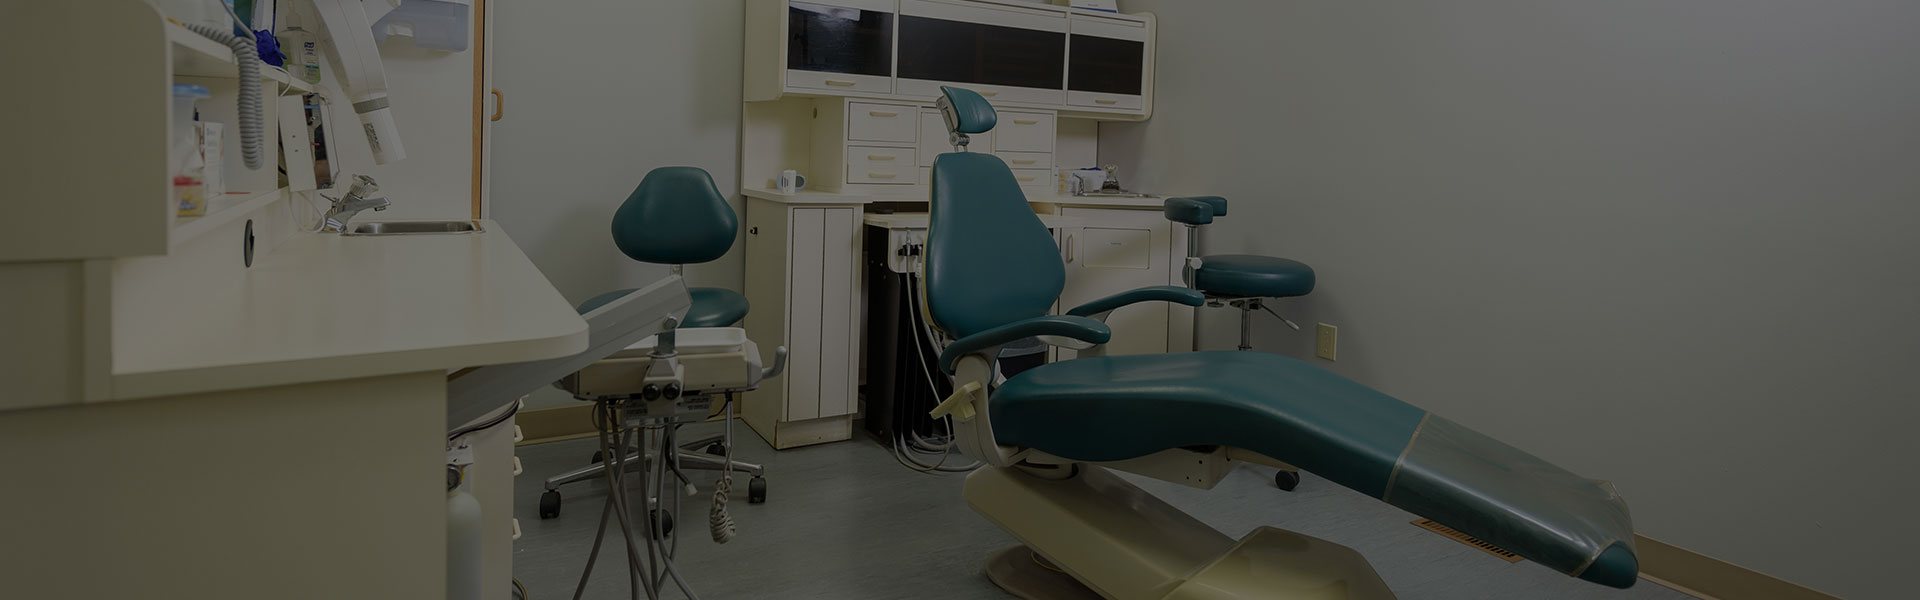 alliance dental coldbrook clinic